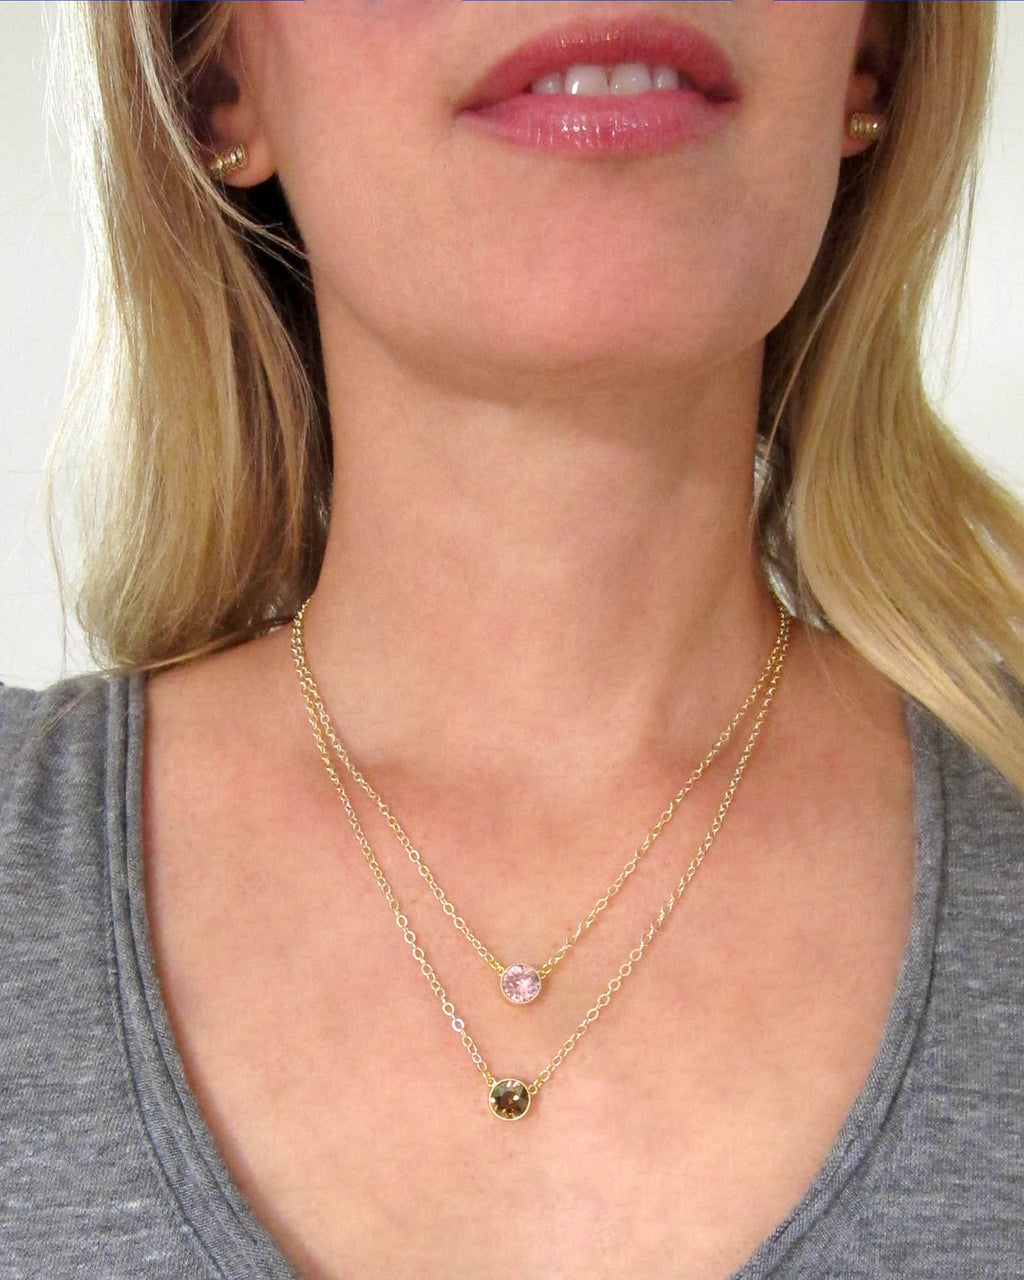 JE Classic Collection Sophie Necklace with Swarovski Crystal